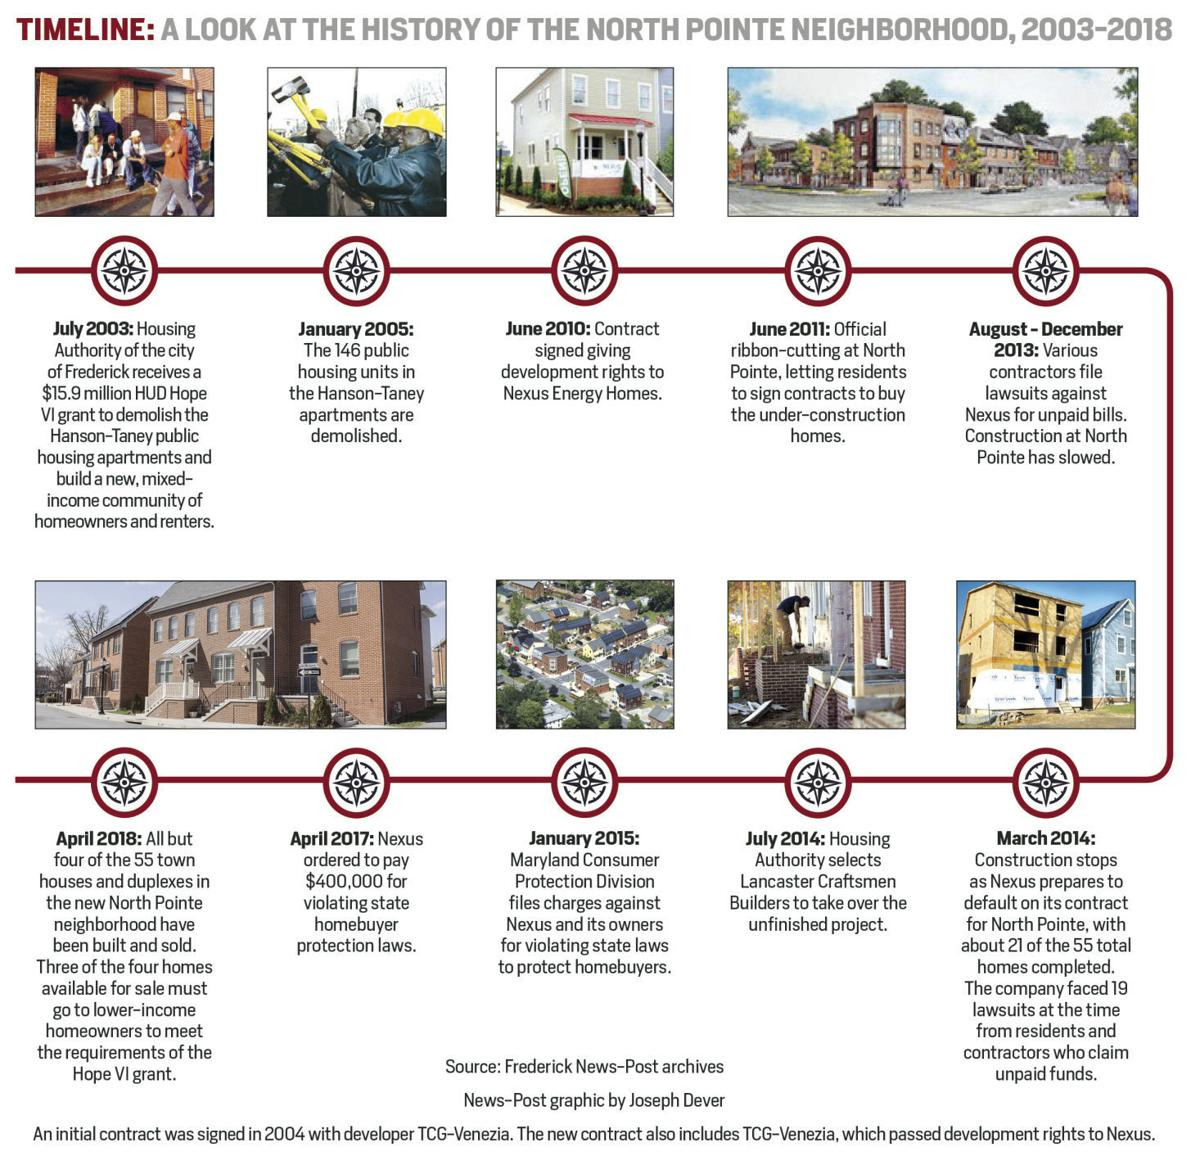 Timeline: A look at the history of the North Pointe neighborhood, 2003-2018